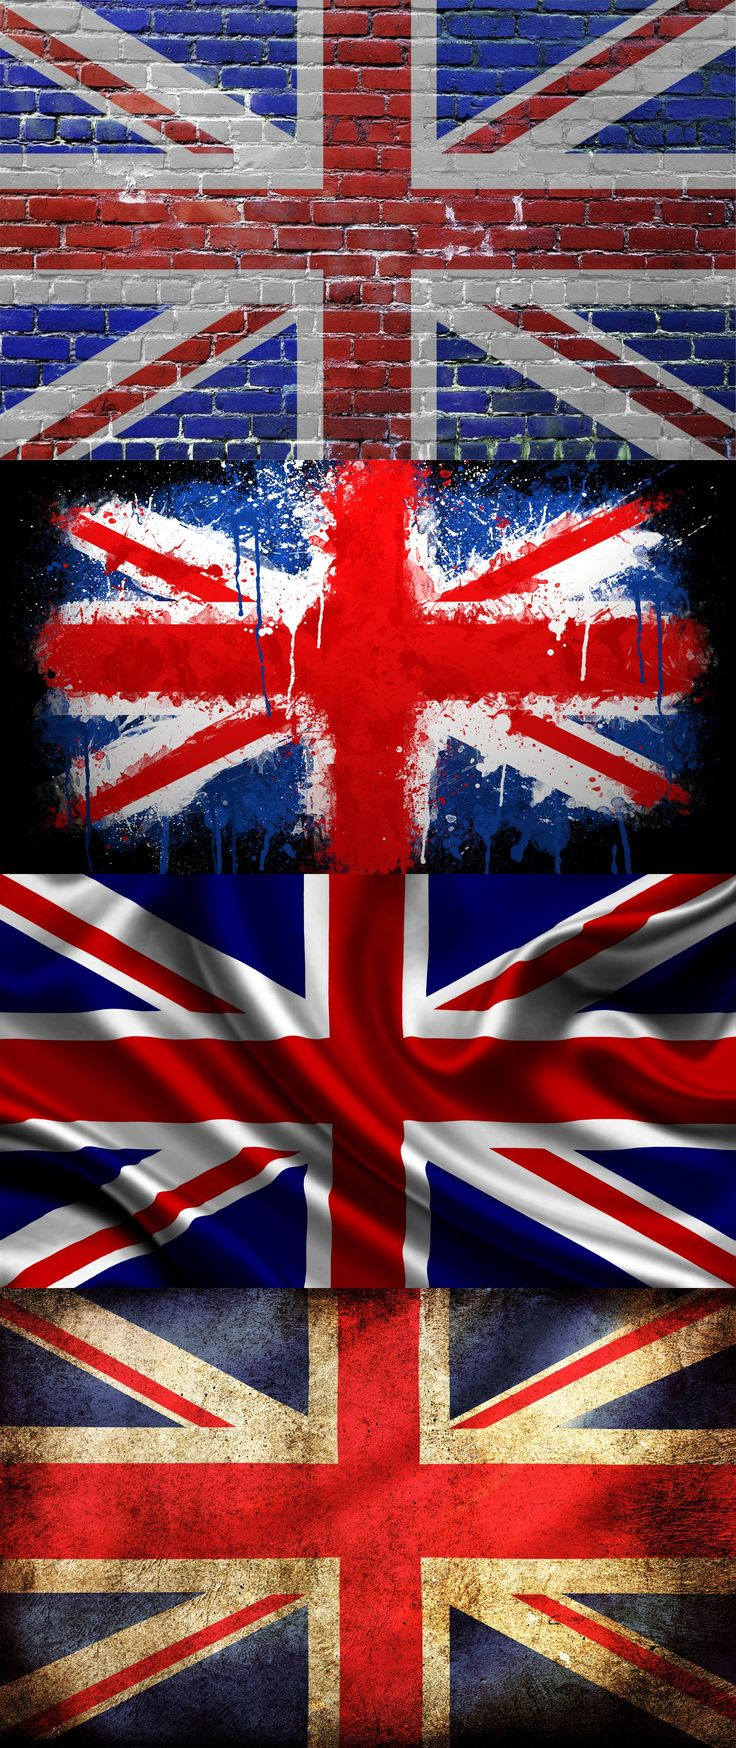 England, united kingdom, uk, great britain flag, gb